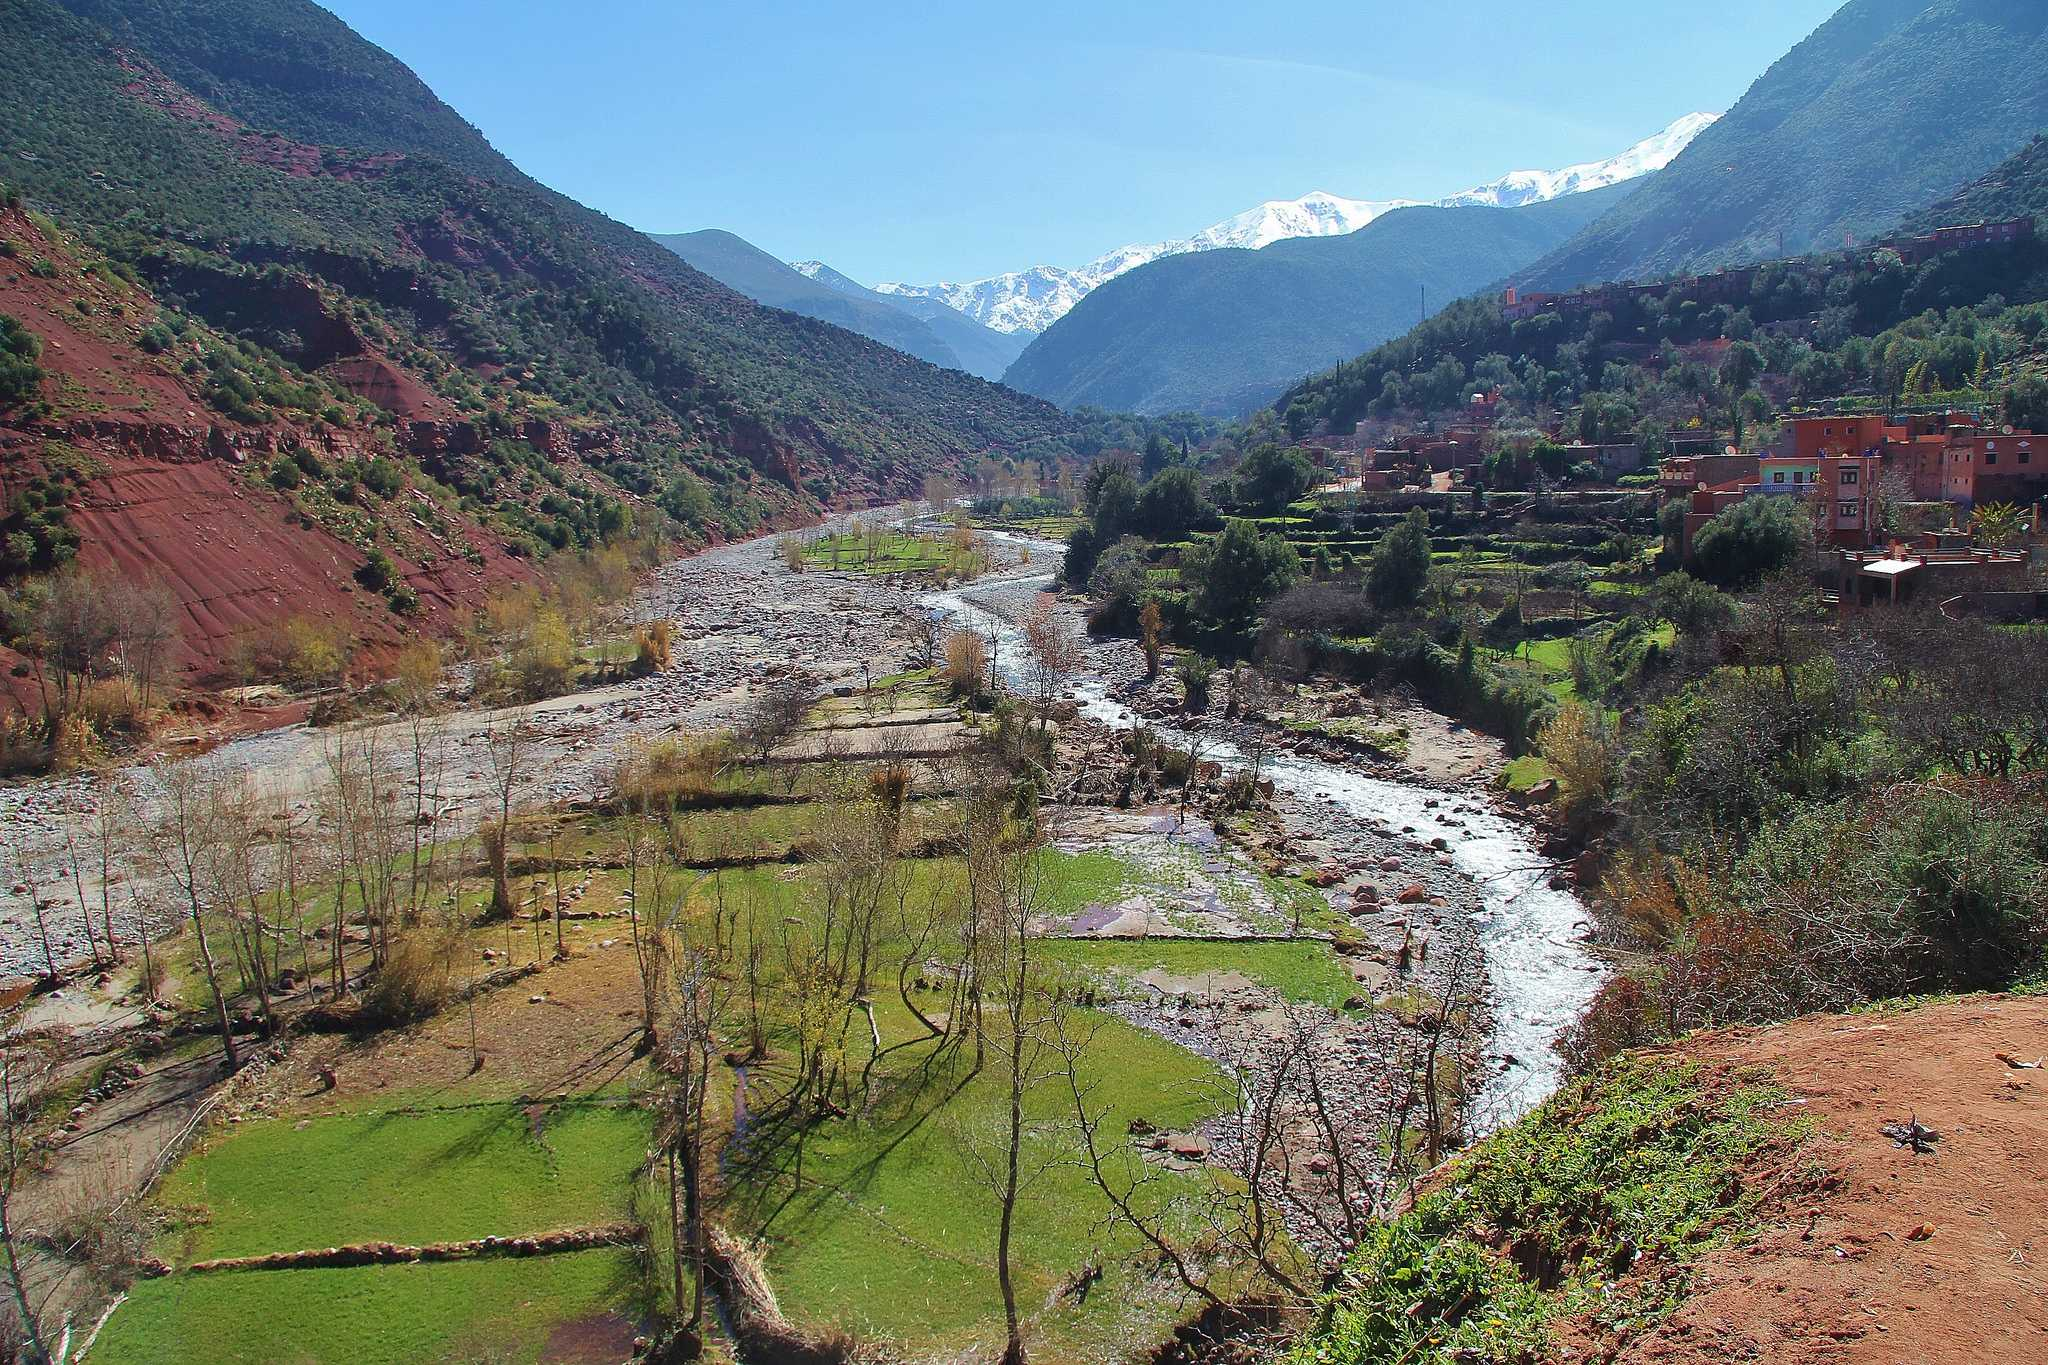 Day Trip To High Atlas Mountains From Marrakech